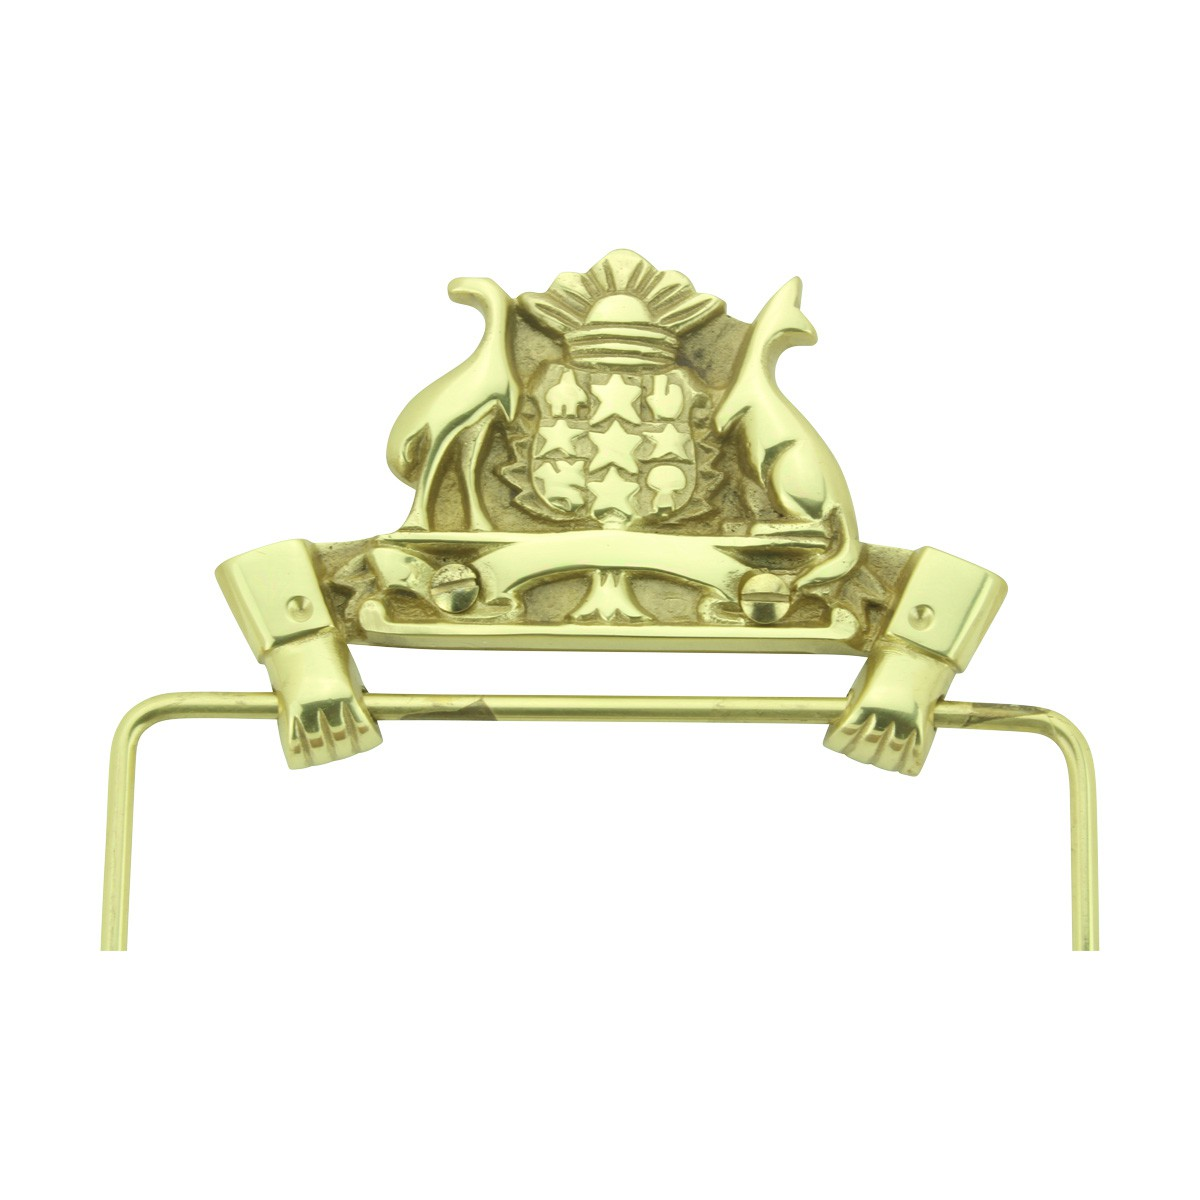 Antique Toilet Paper Holder Wall Mount Brass Victorian Tissue Holder toilet paper holder stand tissue holder for bathroom toilet paper holder wall mount